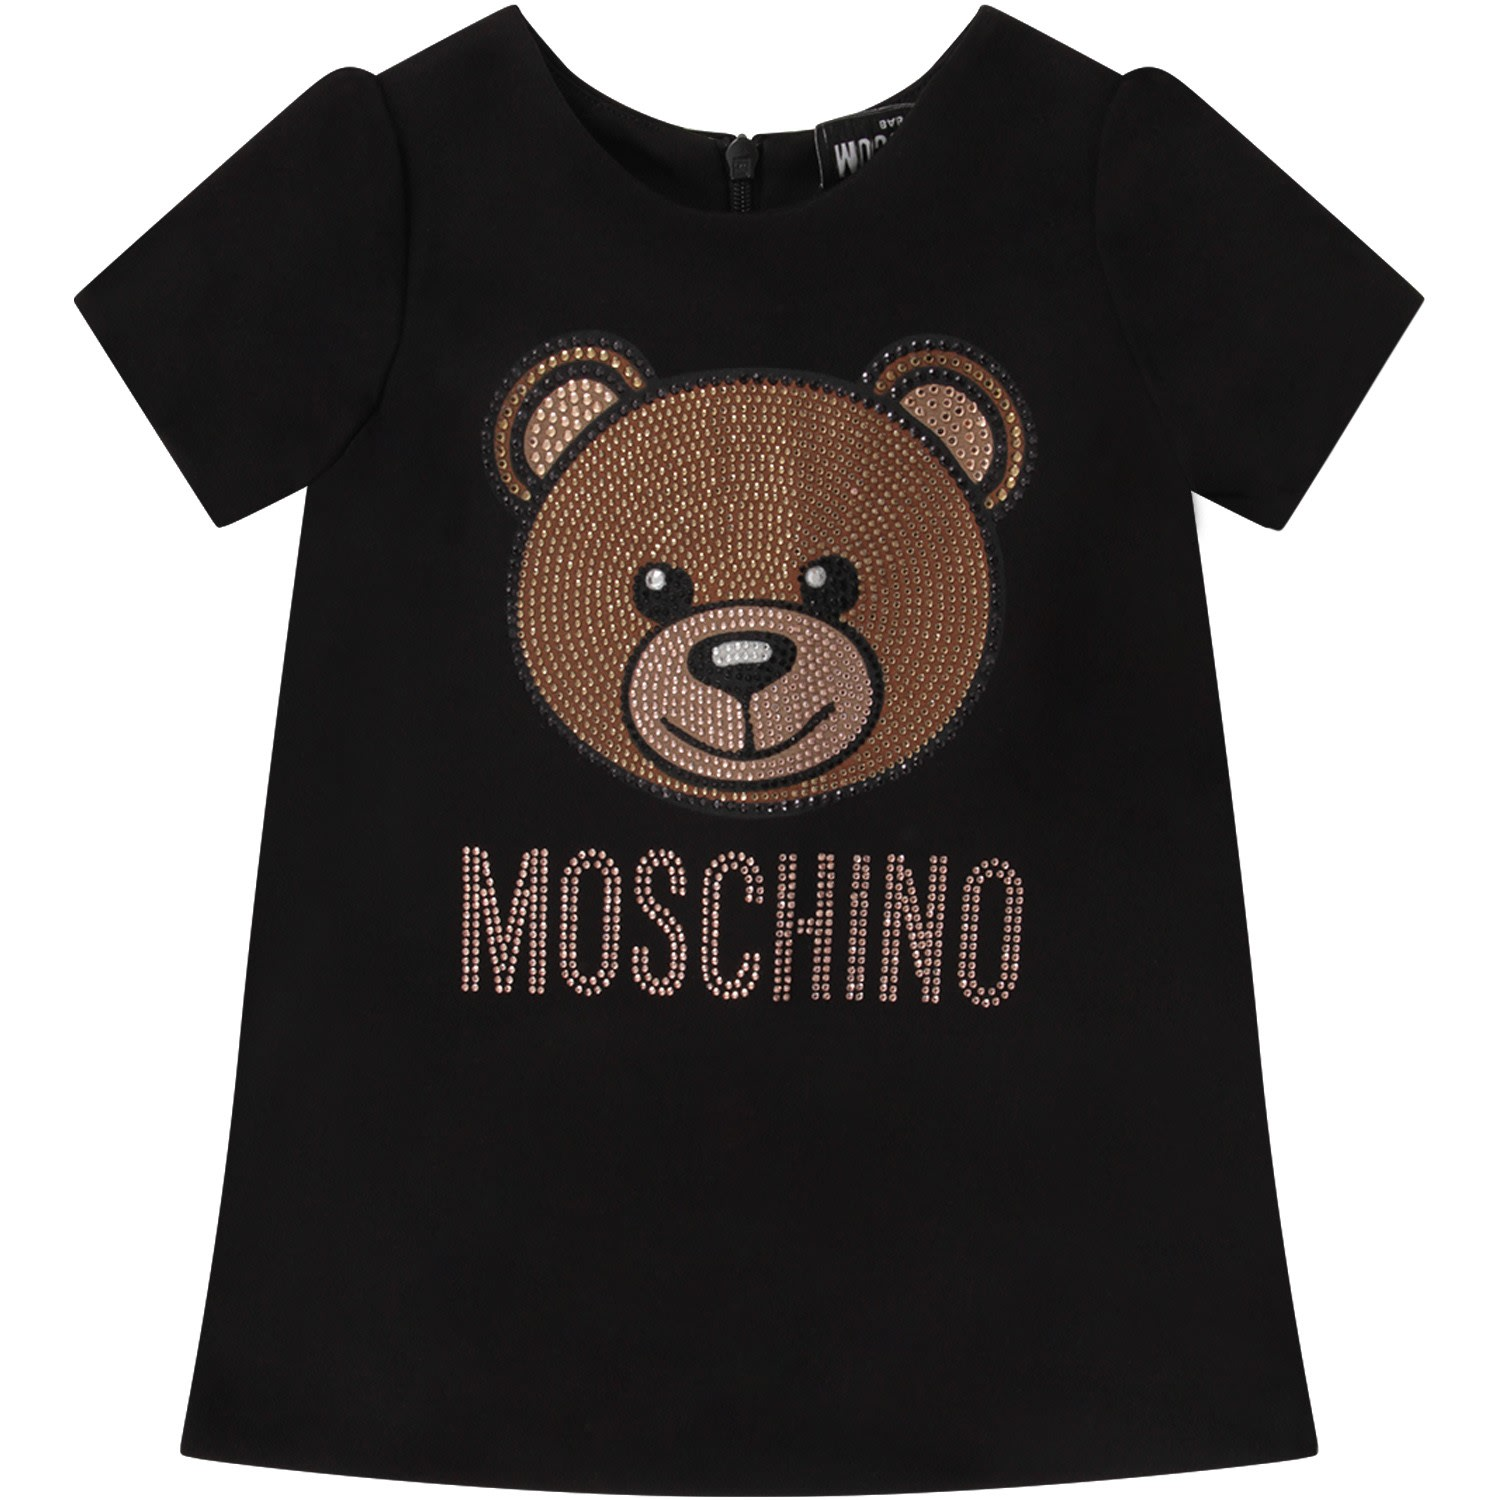 Moschino Black Babygirl Dress With Teddy Bear